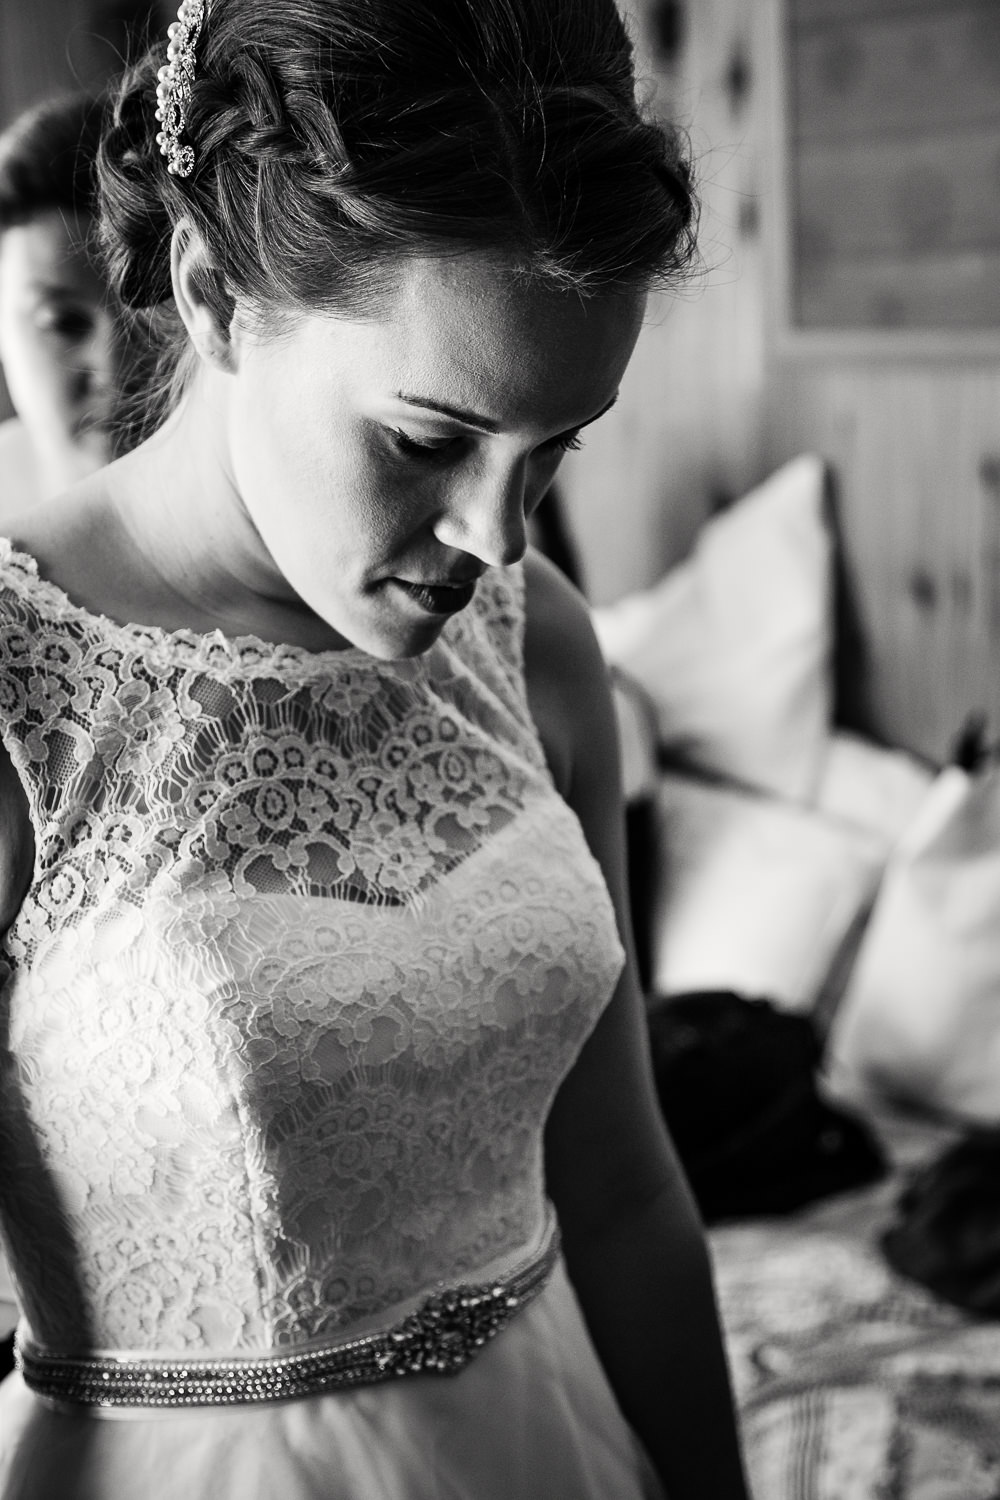 absaroka-beartooth-wilderness-montana-wedding-bride-getting-dressed.jpg